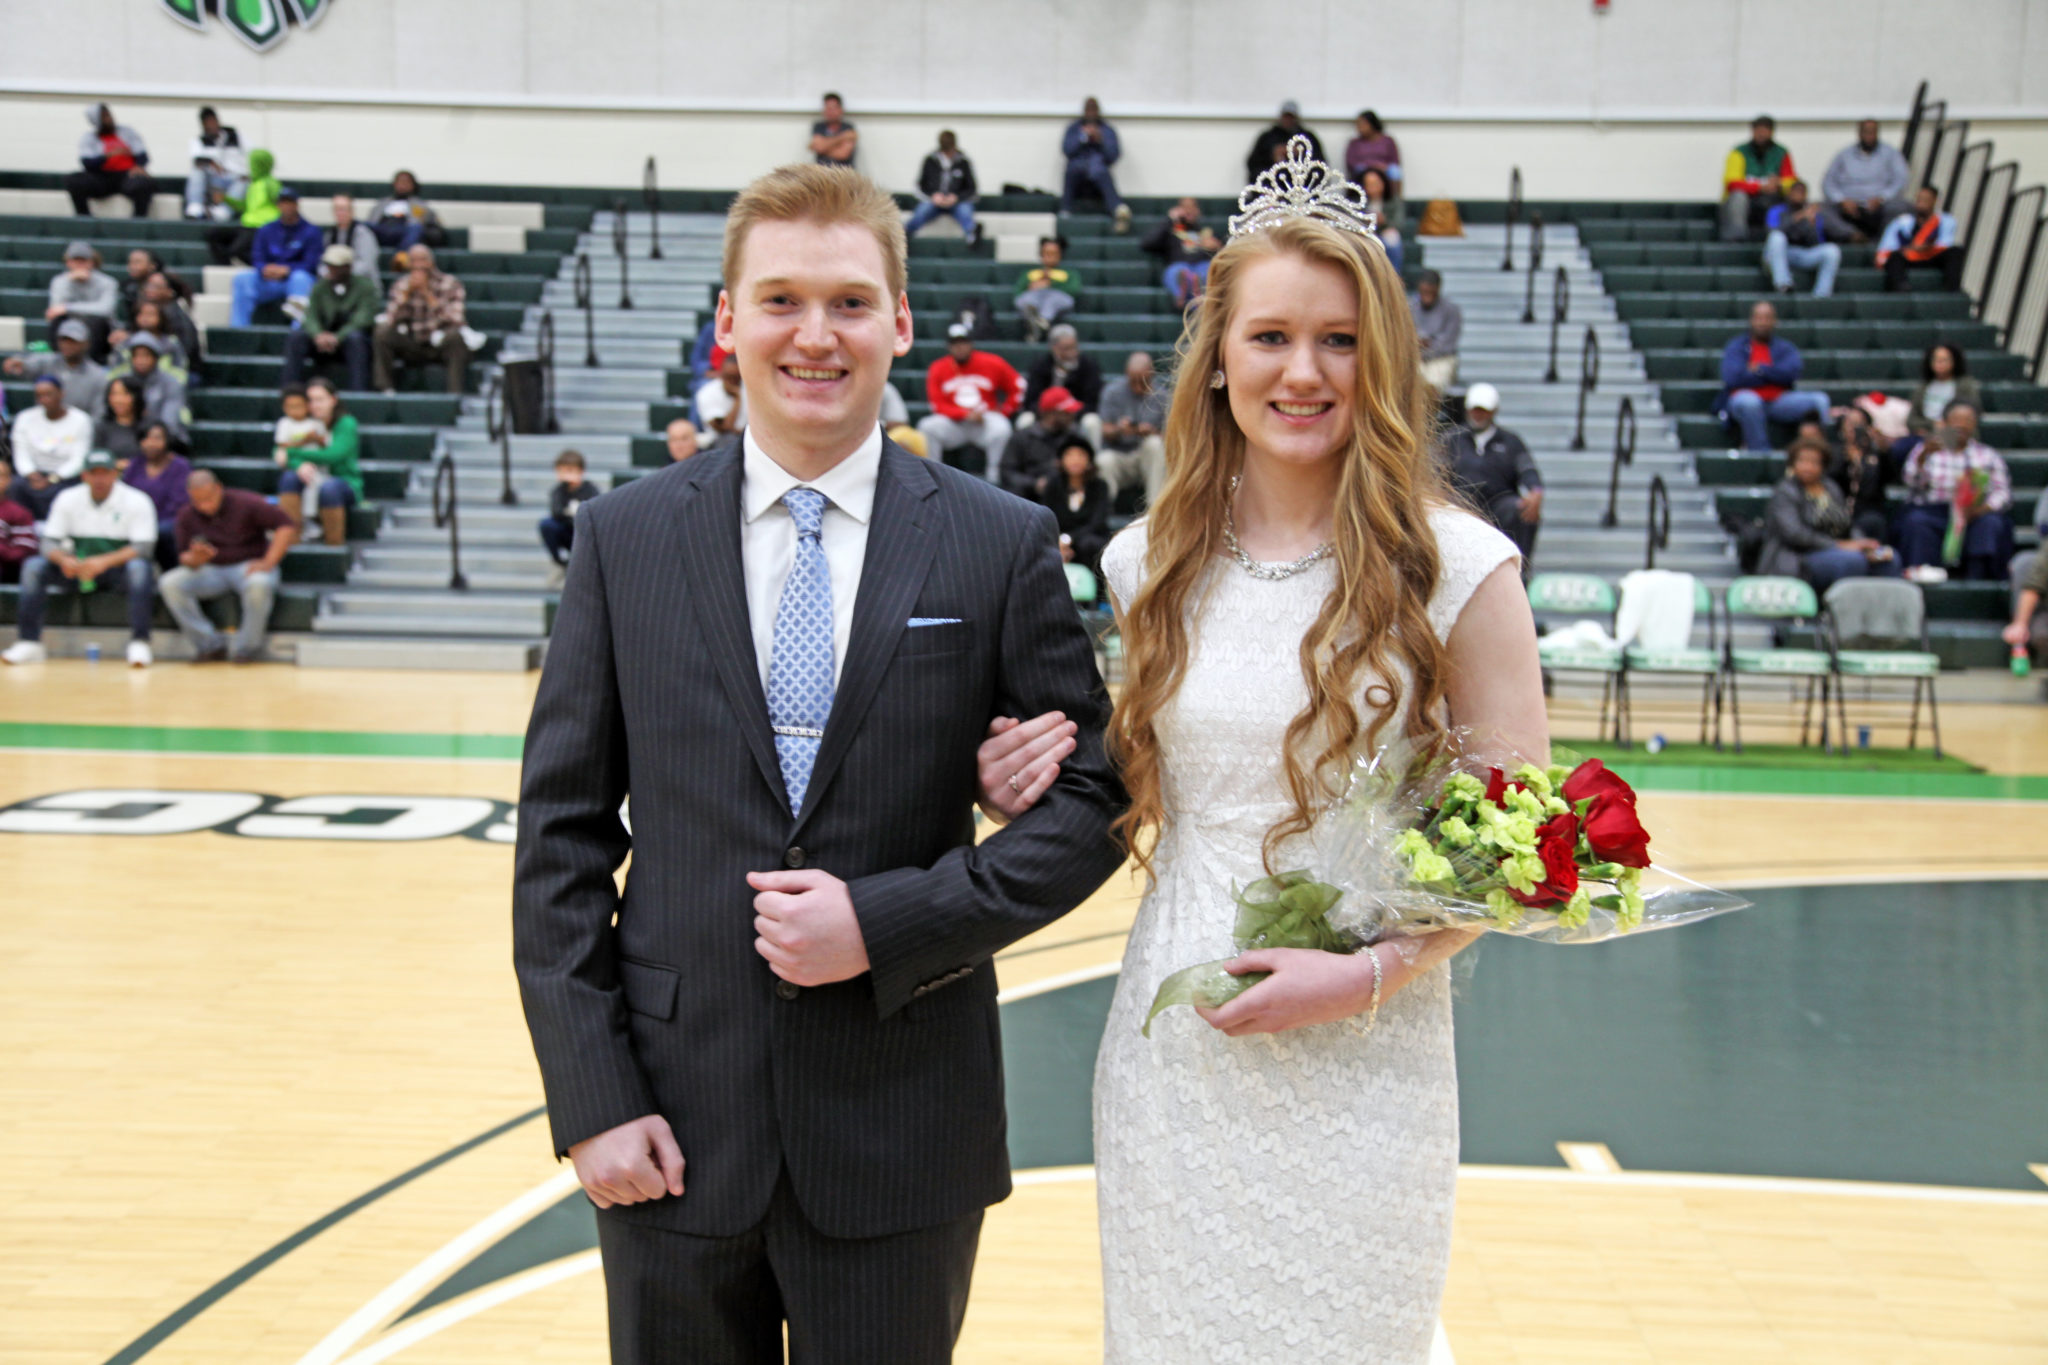 New ESCC Homecoming queen crowned